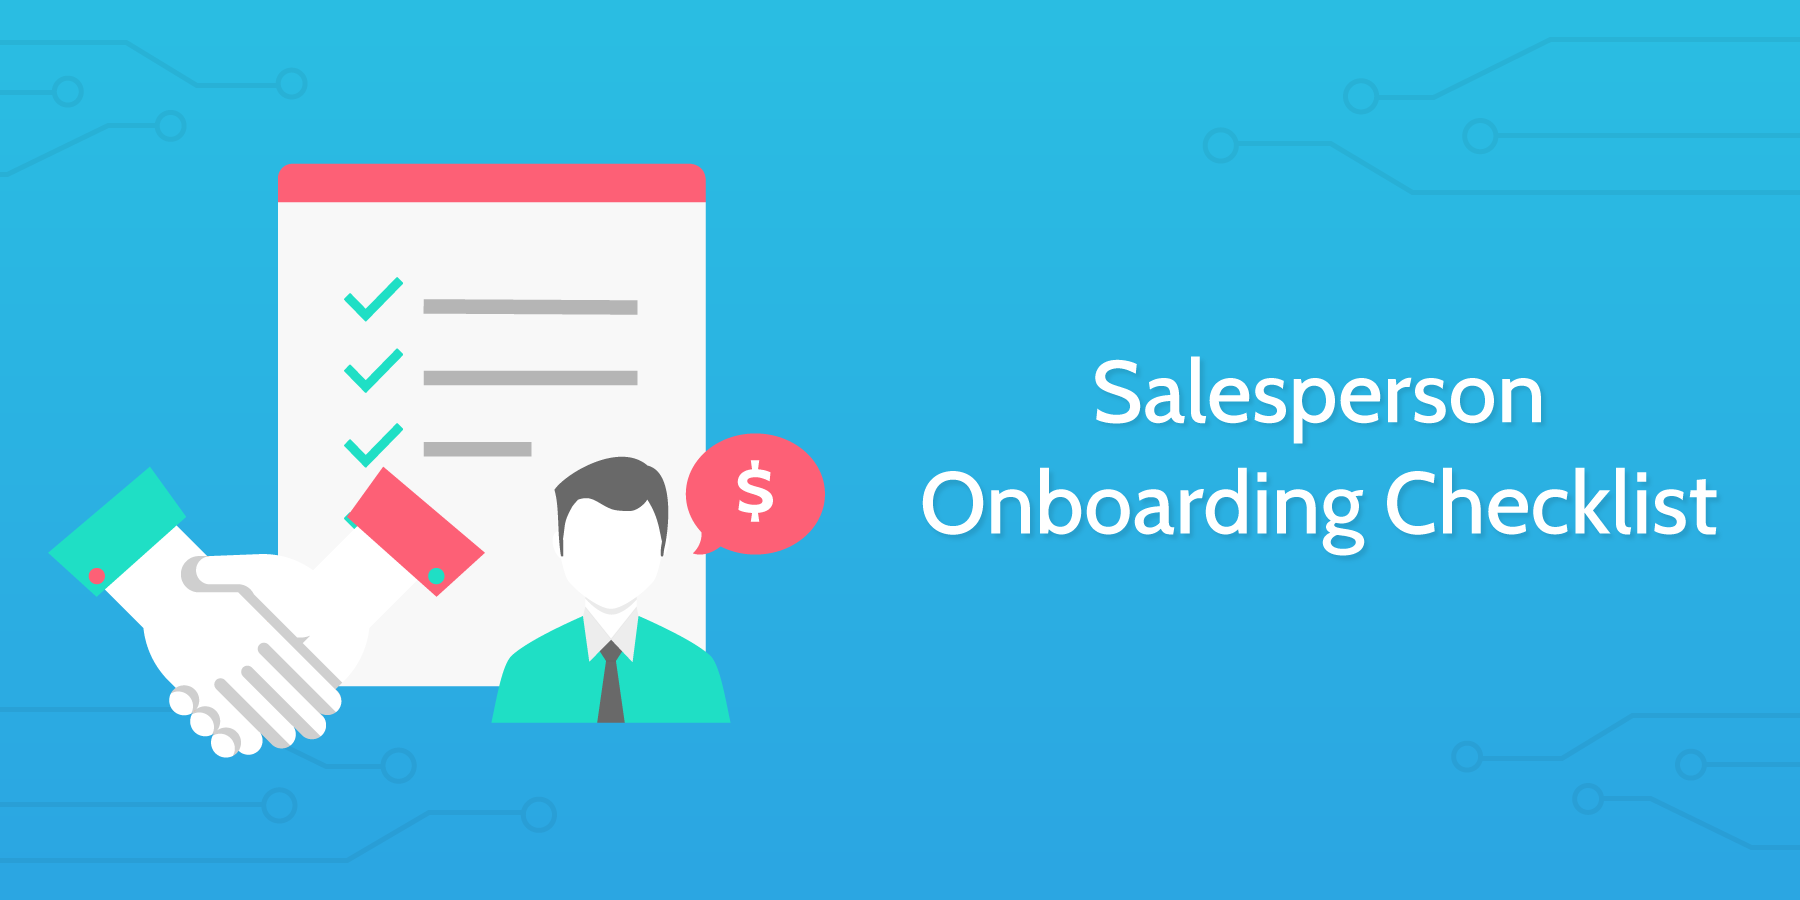 New Hire Checklist - Salesperson Onboarding Checklist for Startups